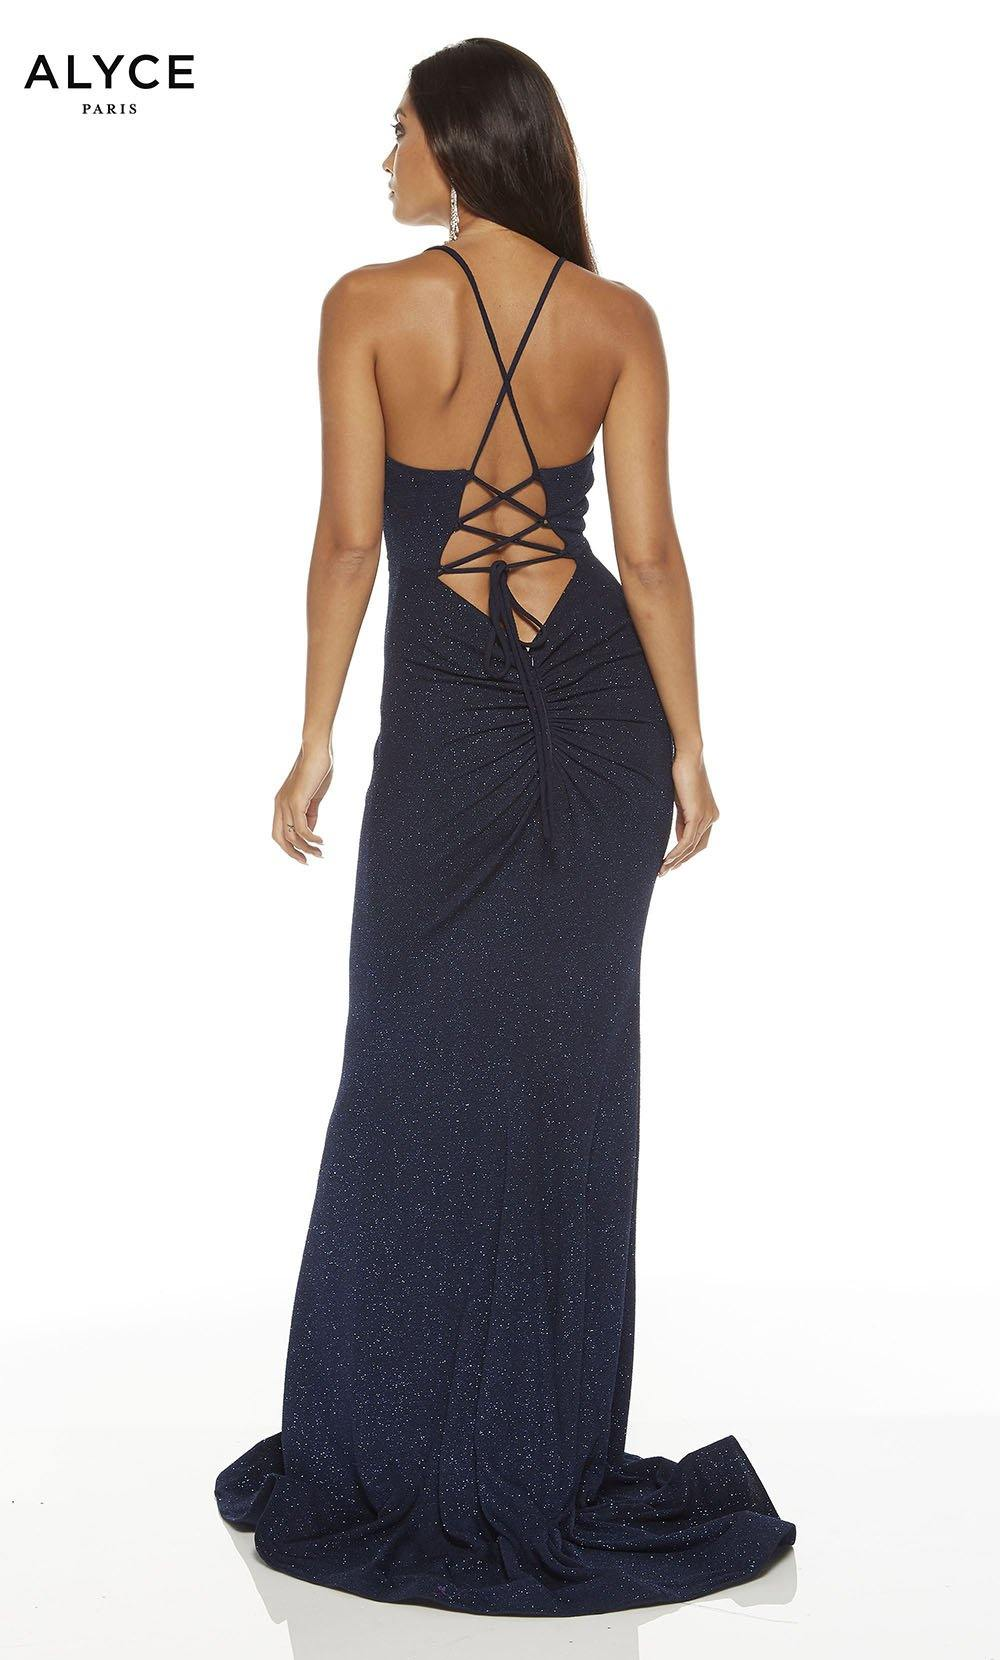 Midnight Blue bodycon red-carpet dress with a strappy back